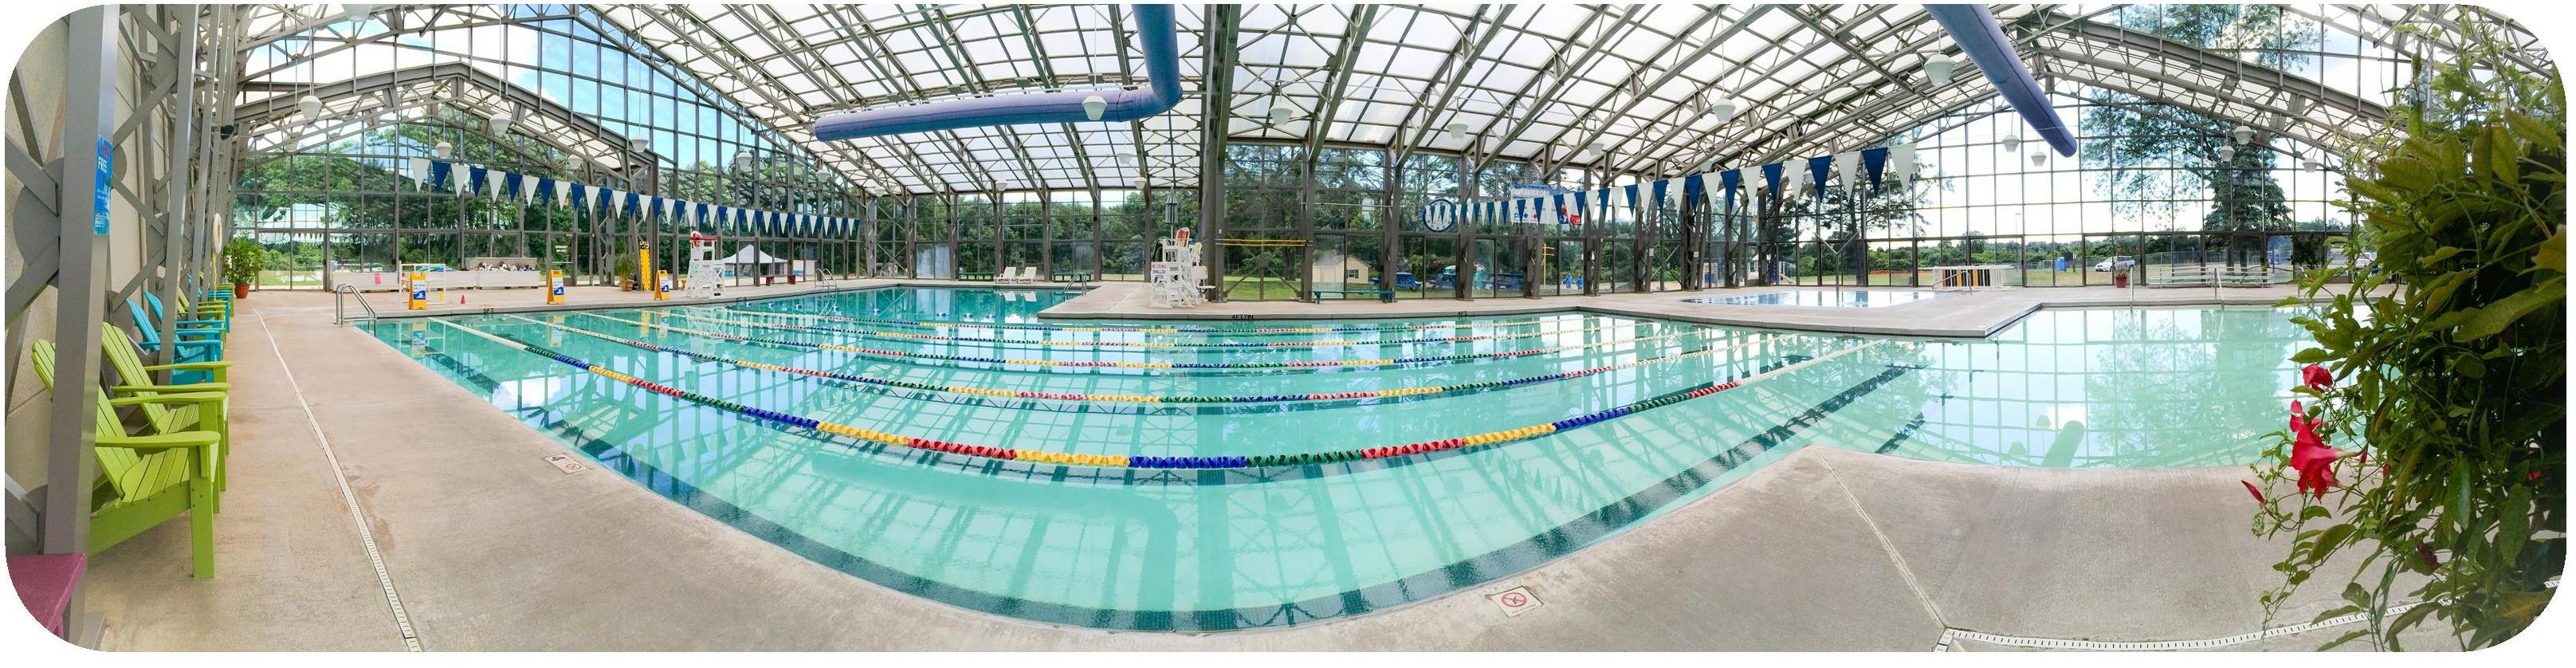 Find a gym that suits you healthy living in okc for Garden city ymca pool schedule